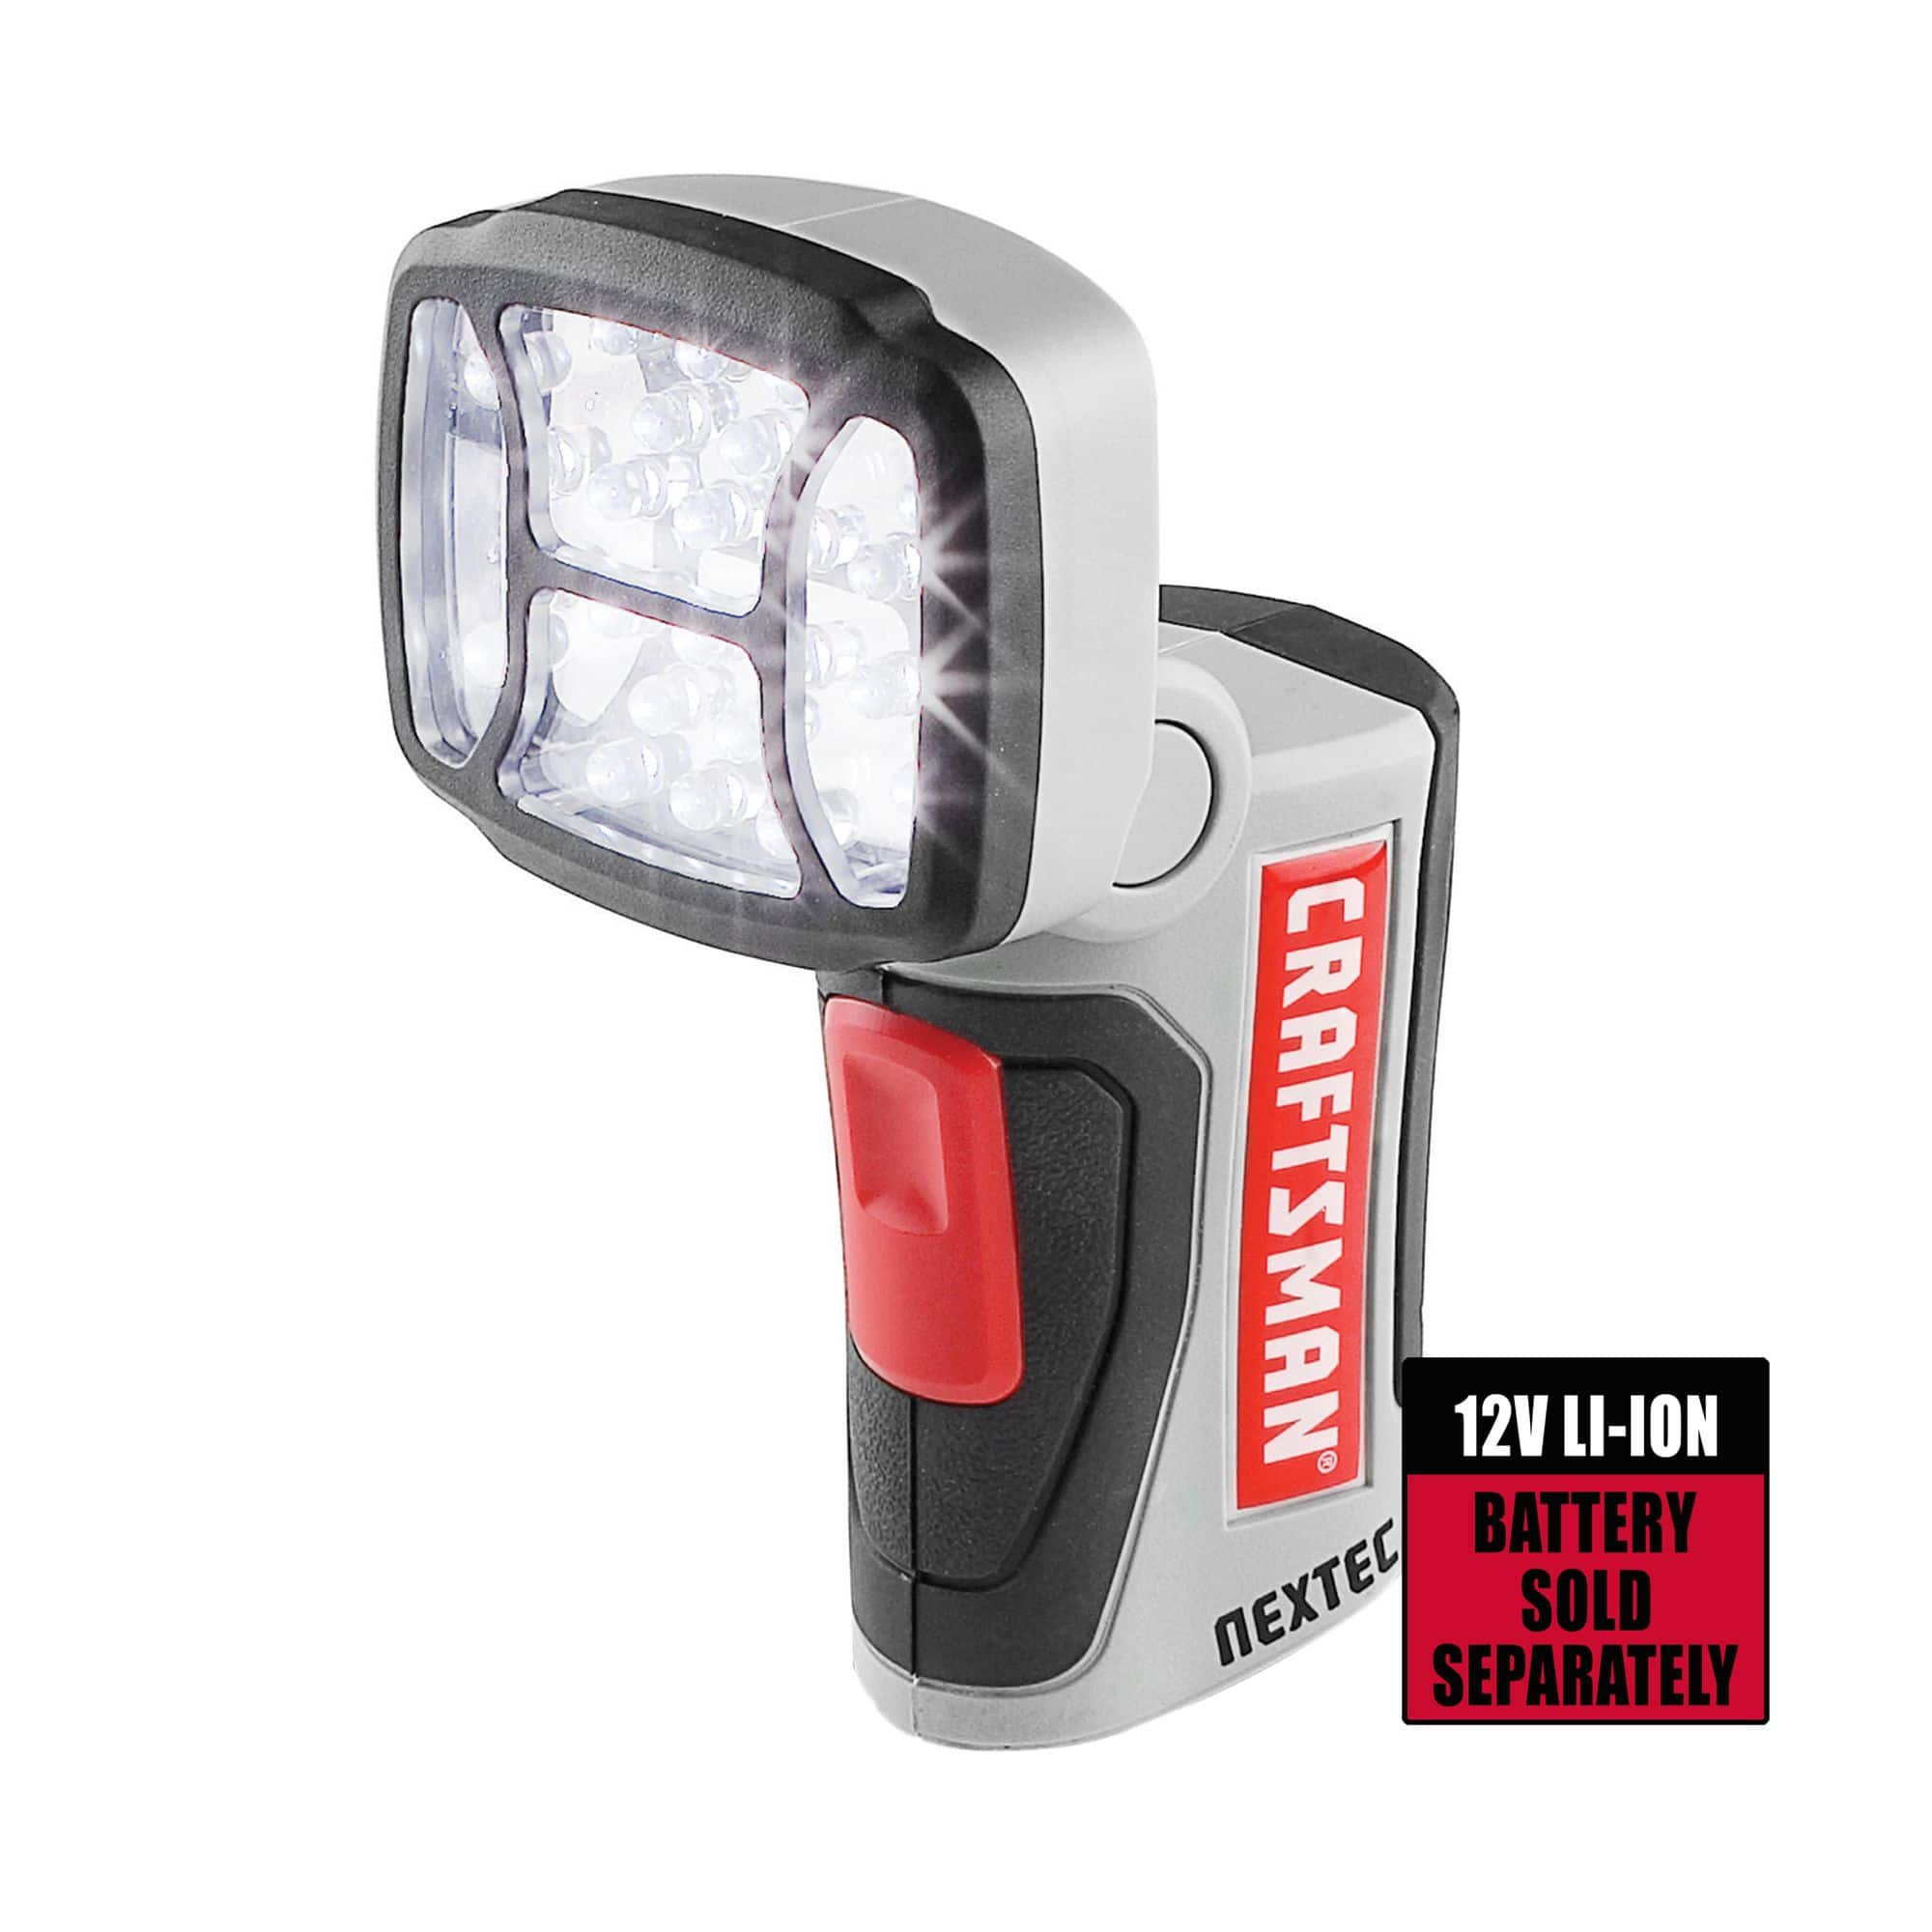 Craftsman Nextec 12-Volt LED Worklight (battery not included) $7.99 + Free Store Pickup ~ Sears